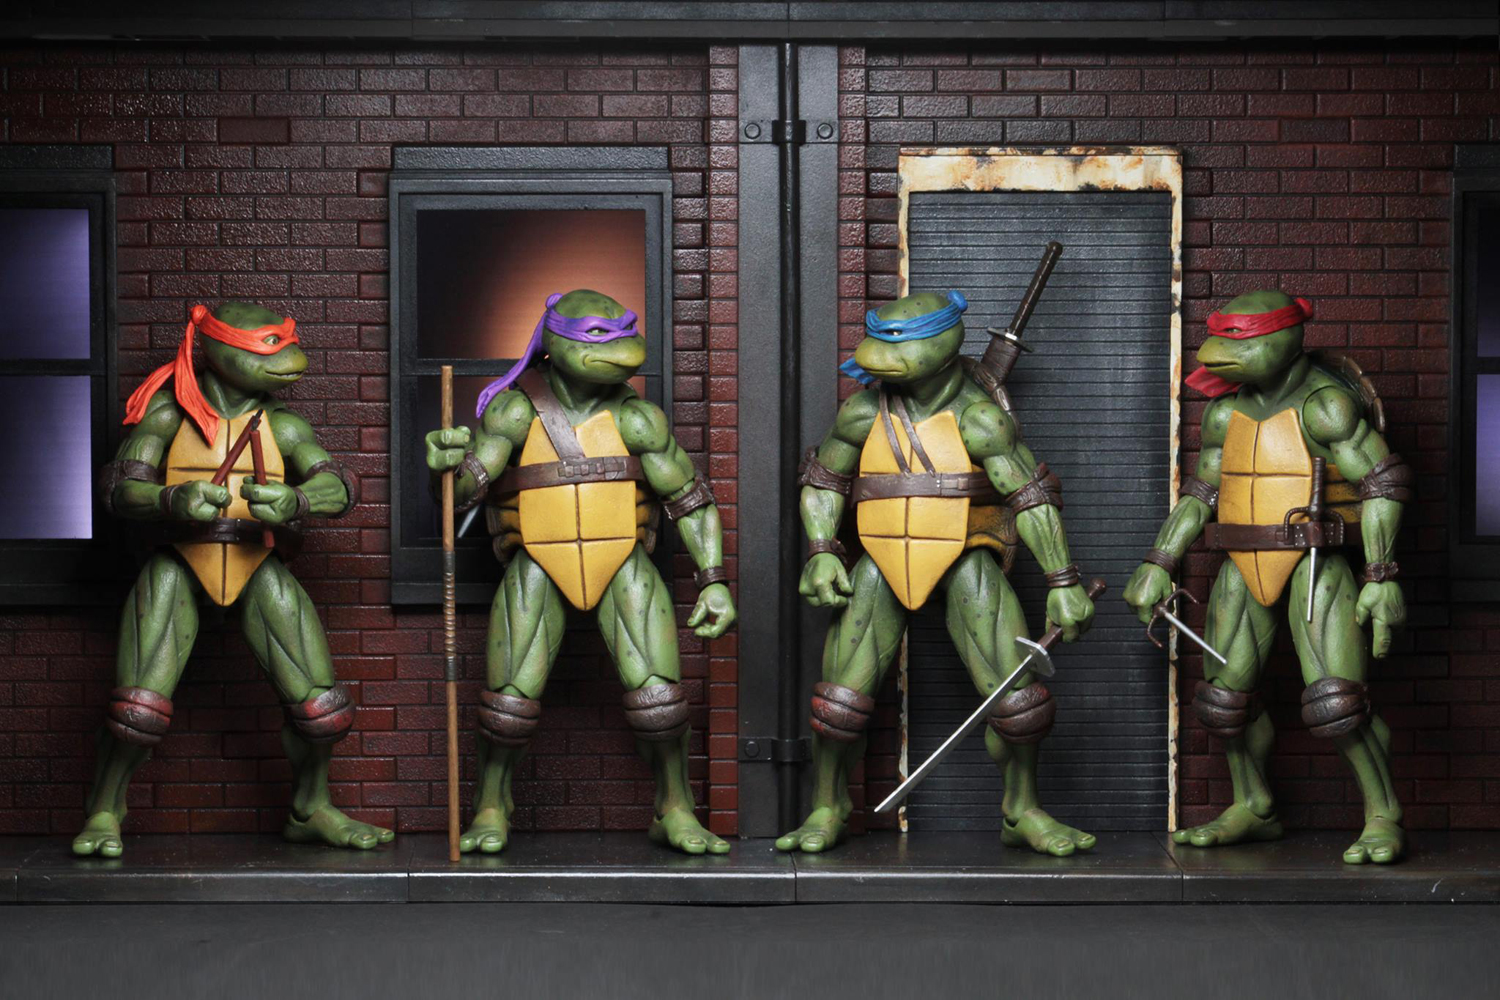 tmnt-neca-1990-7-inch-figures-sdcc-2018-exclusives-1